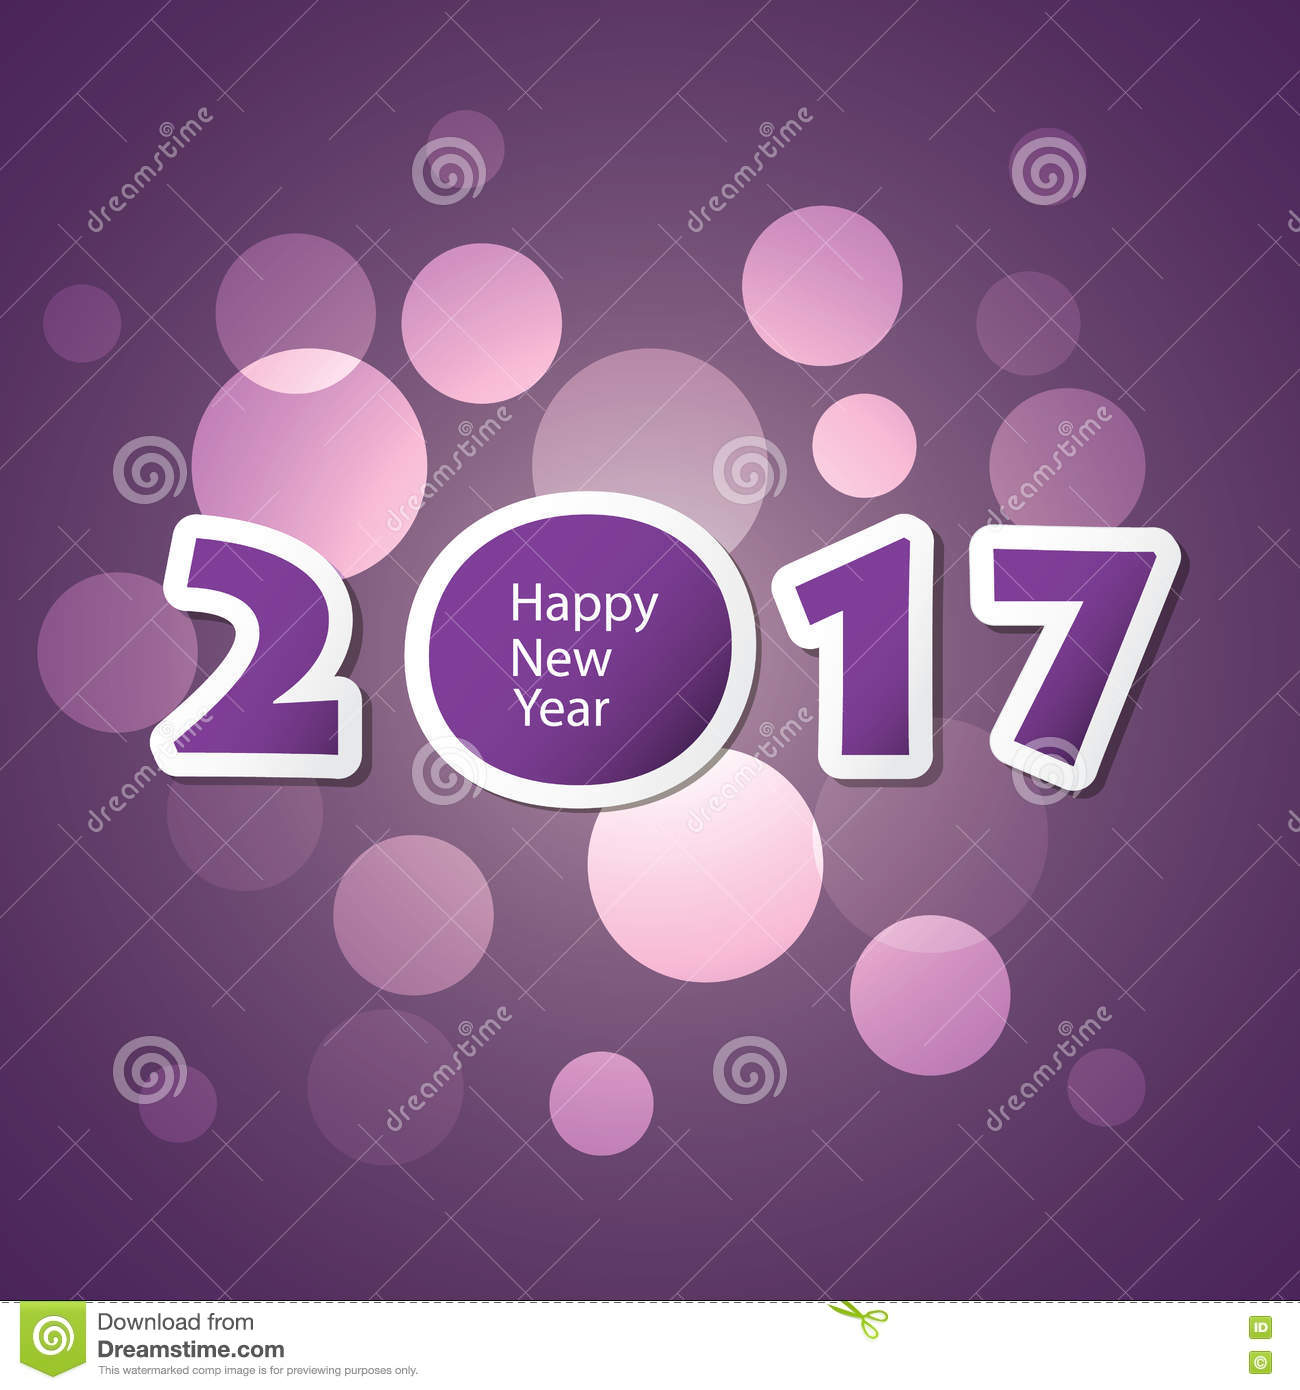 best wishes abstract modern style happy new year greeting card or background creative design